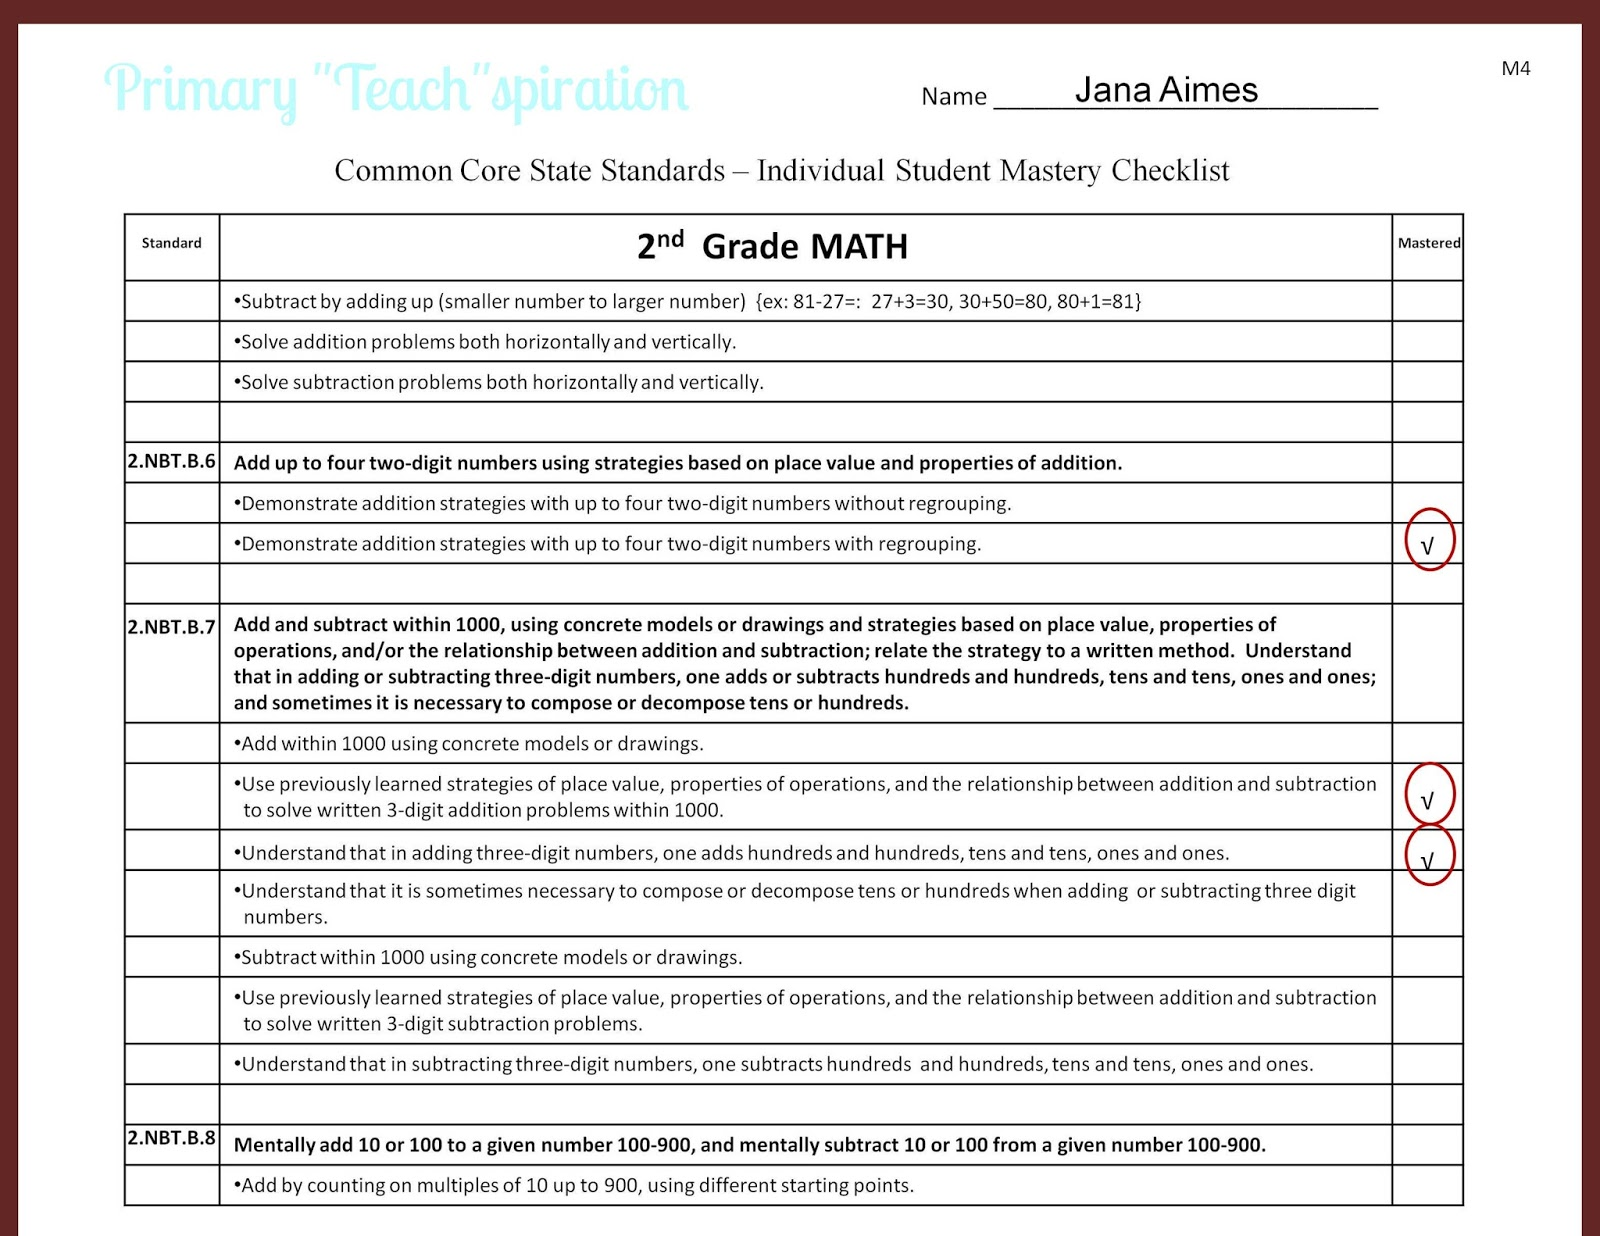 Tracking Student Progress and Mastery - Primary Teachspiration